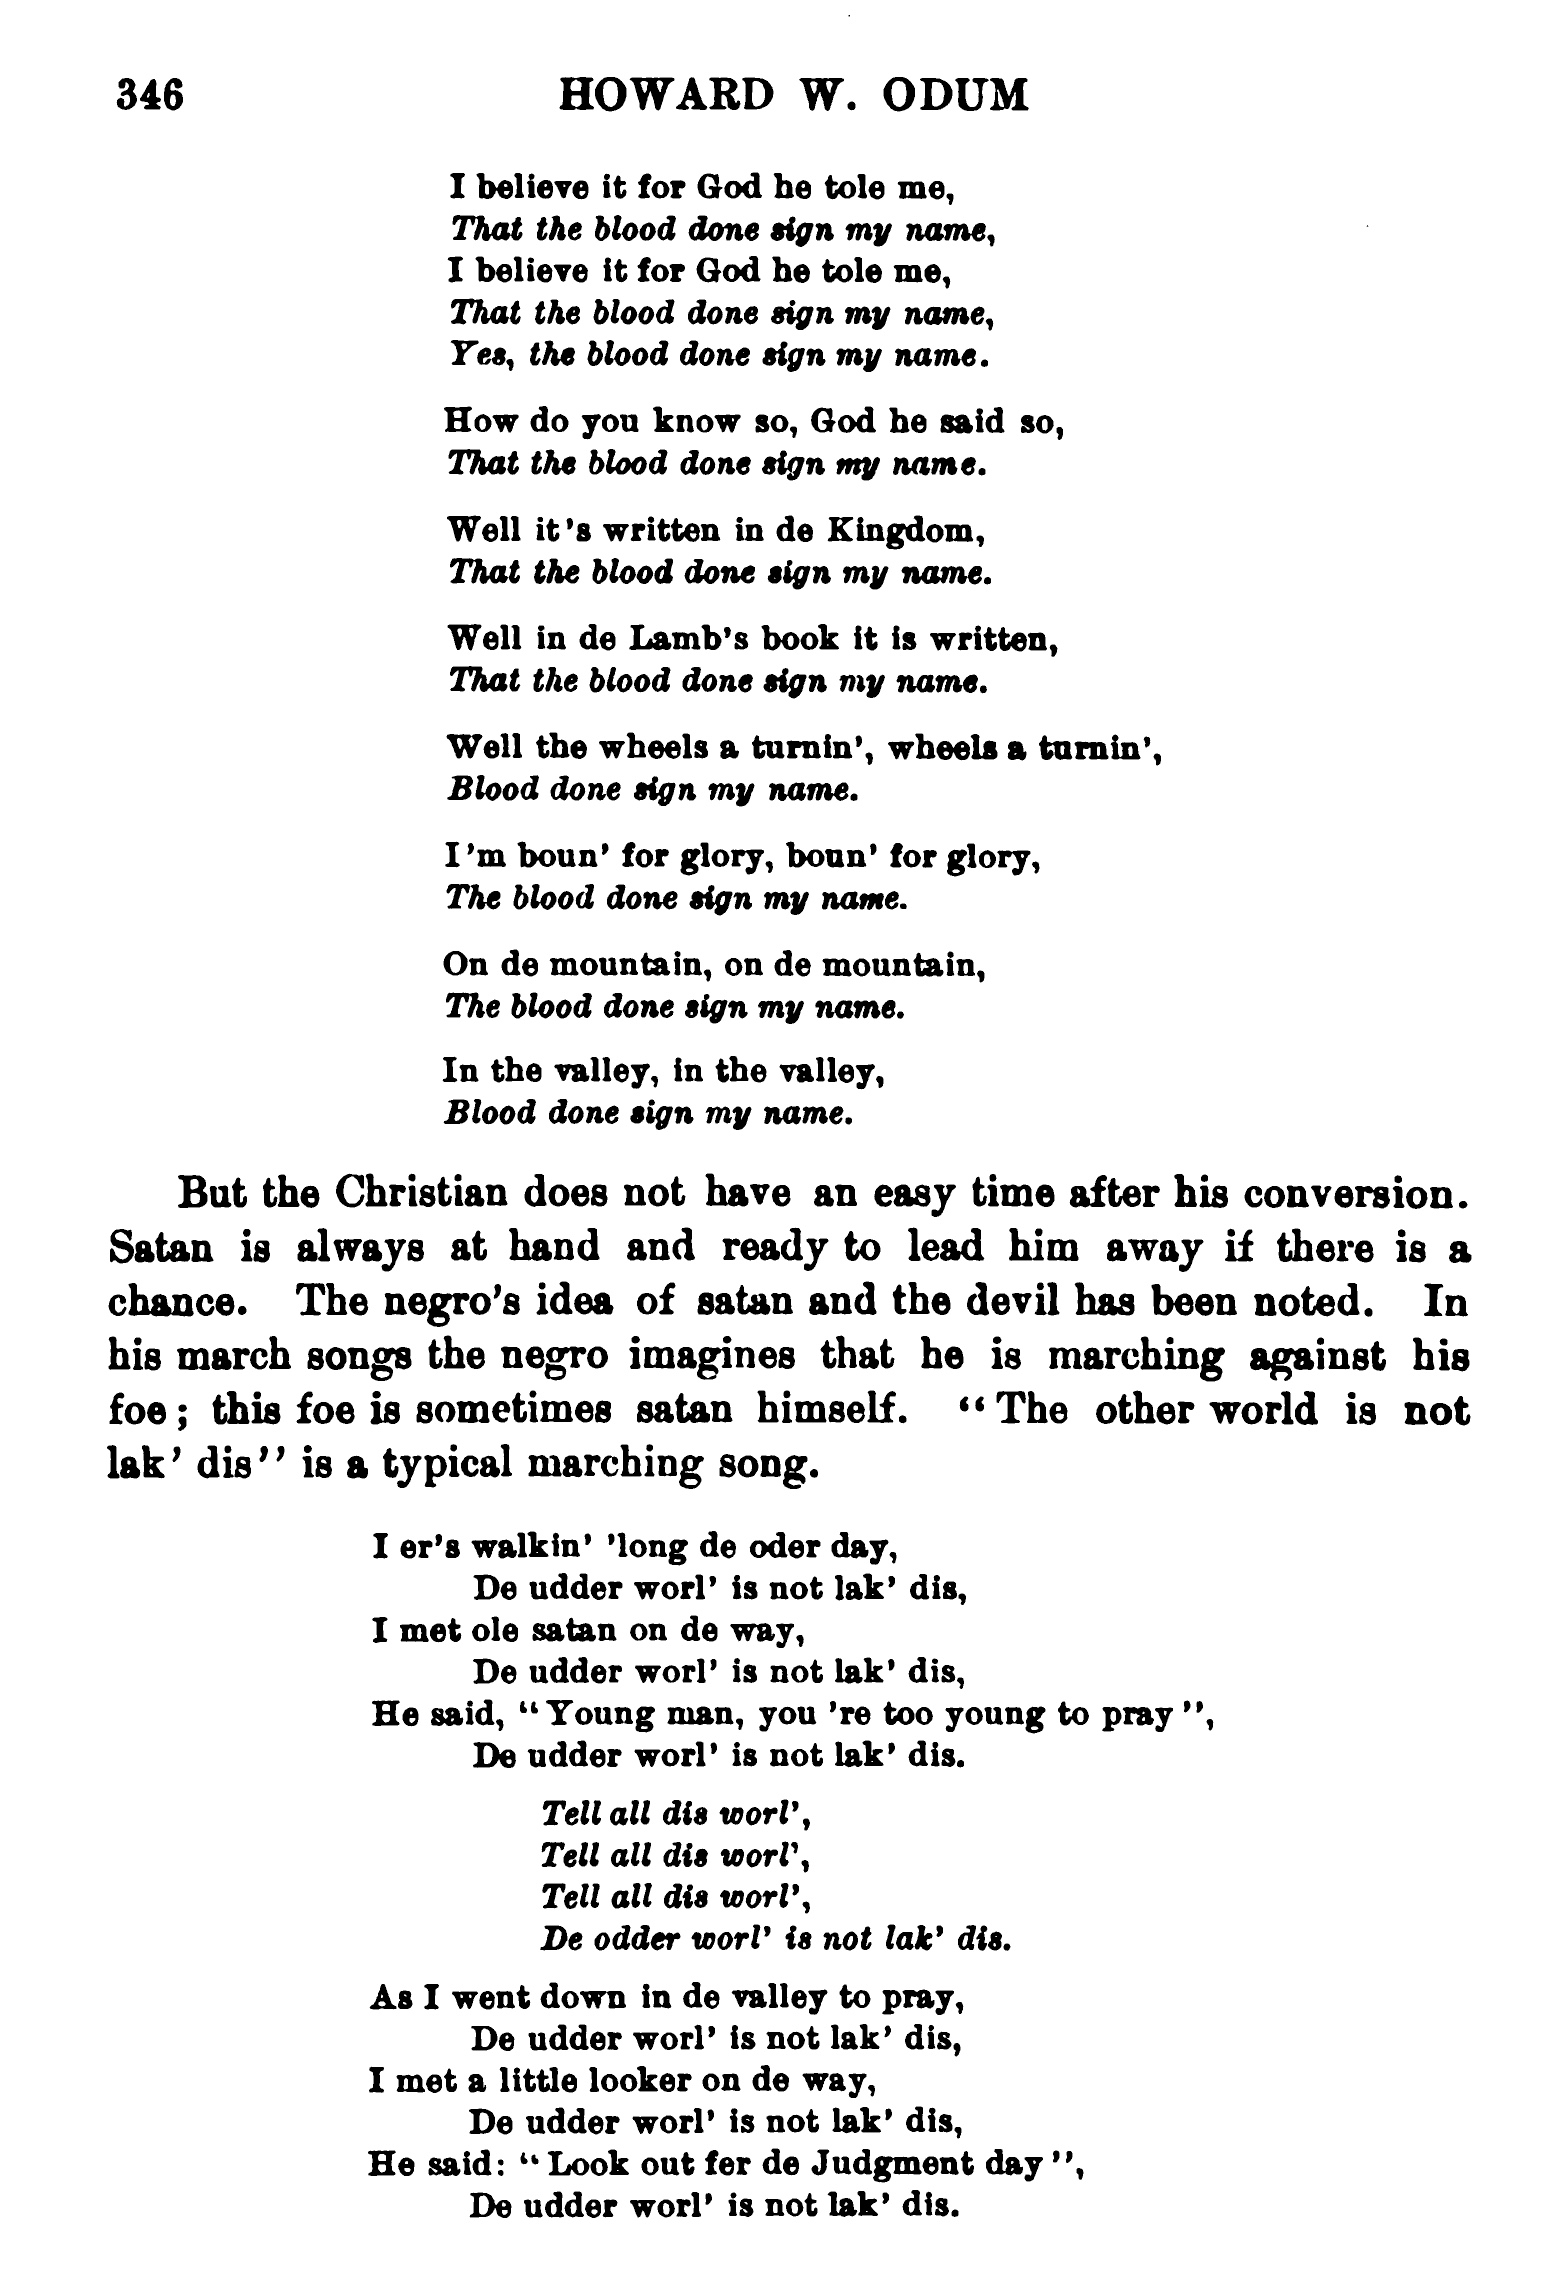 Odum-ReligiousFolkSongs-July1909-82.jpg